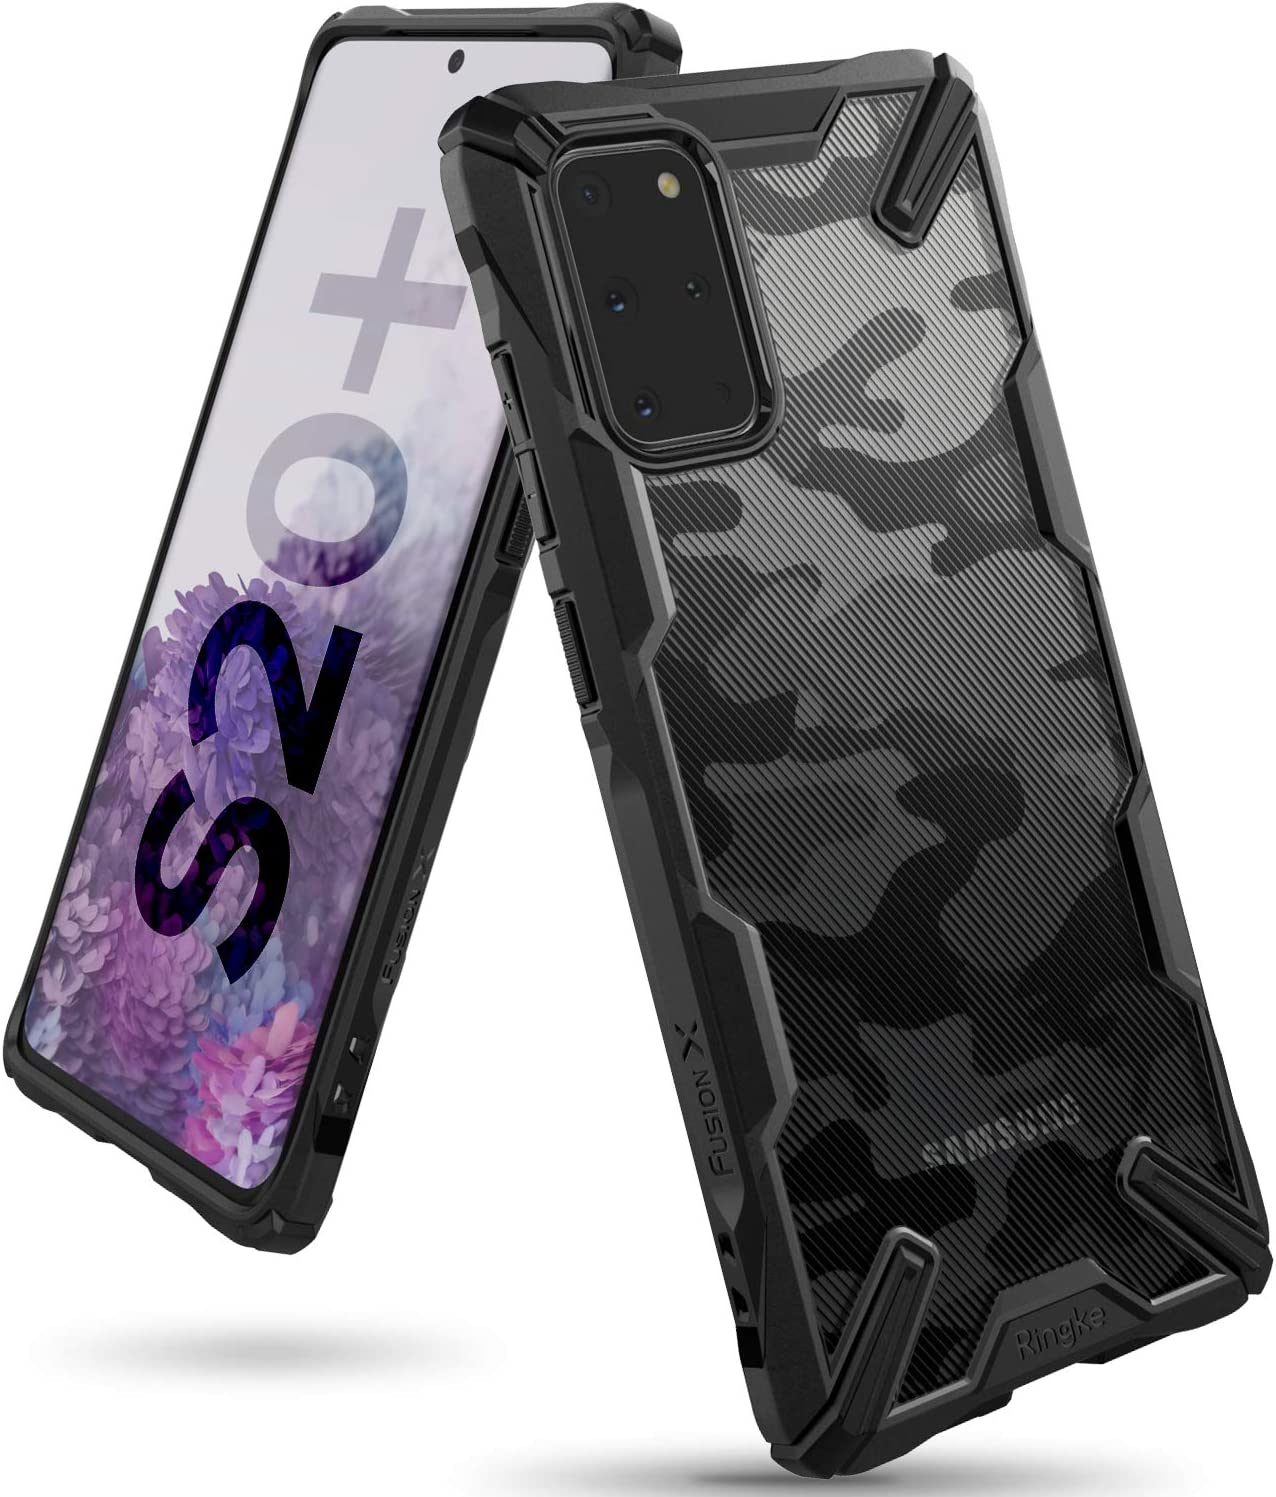 Ringke Fusion-X Design Compatible with Galaxy S20 Plus Case Case Only (2020), Design Back Shockproof Heavy Duty Bumper Cover - Camo Black